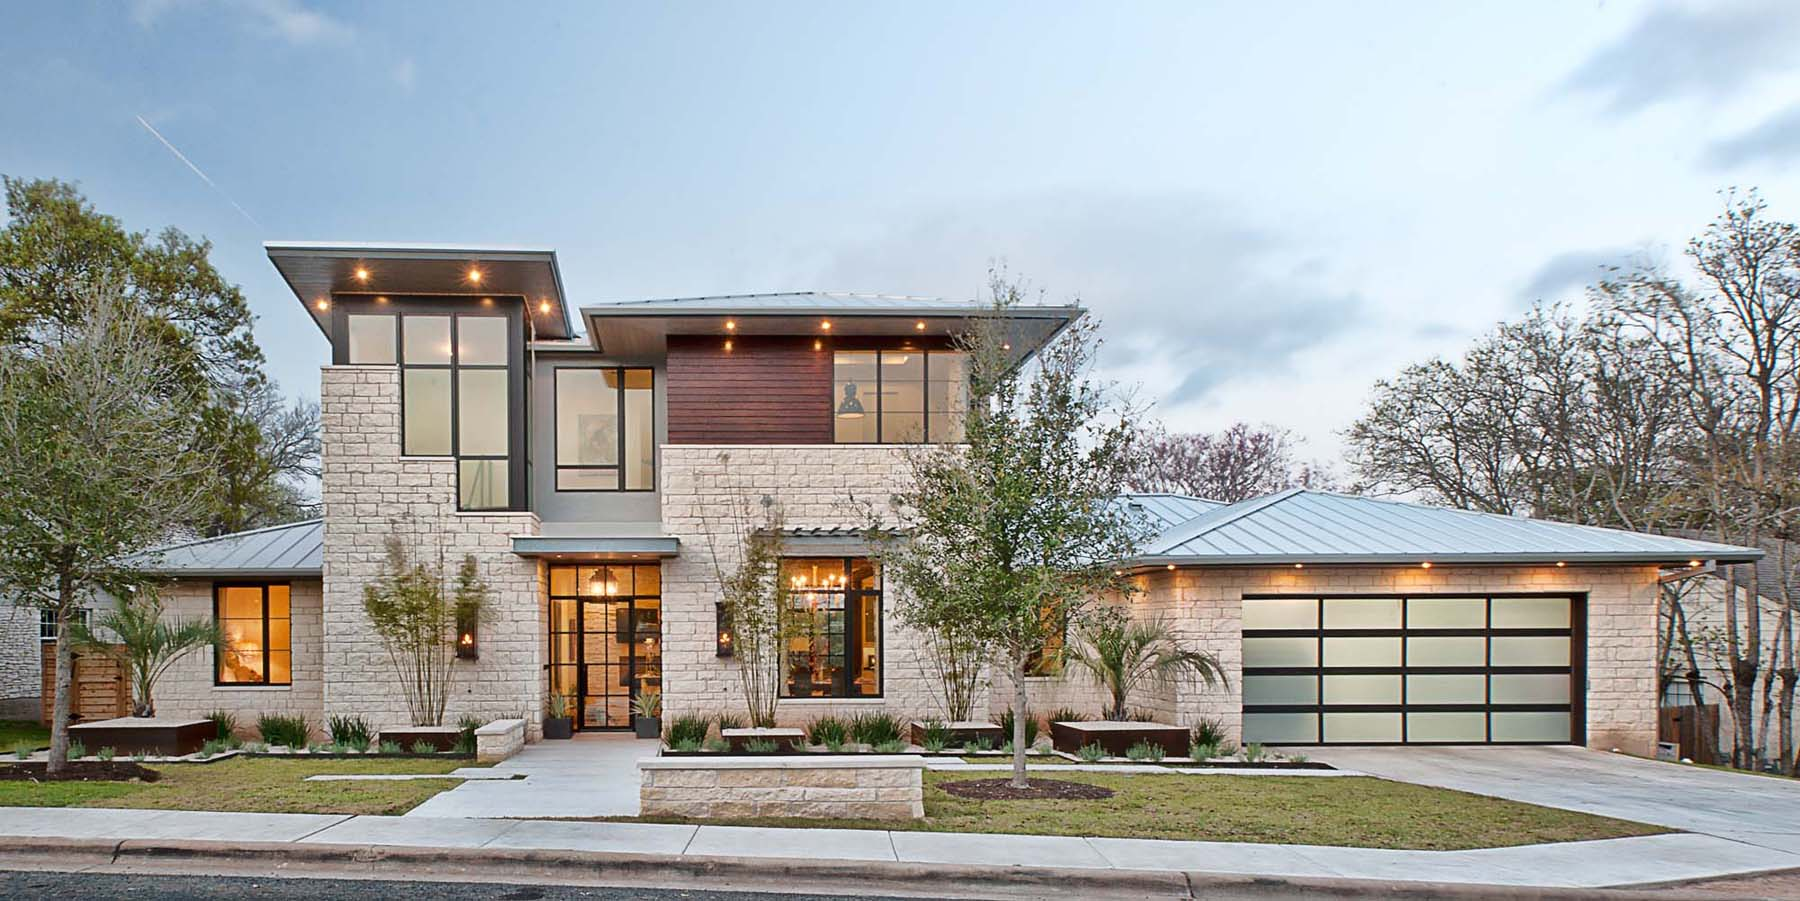 modern home architecture stone. Interesting Stone A Contemporary Home With Rustic Elements Connects To Its Environment Modern Architecture Stone